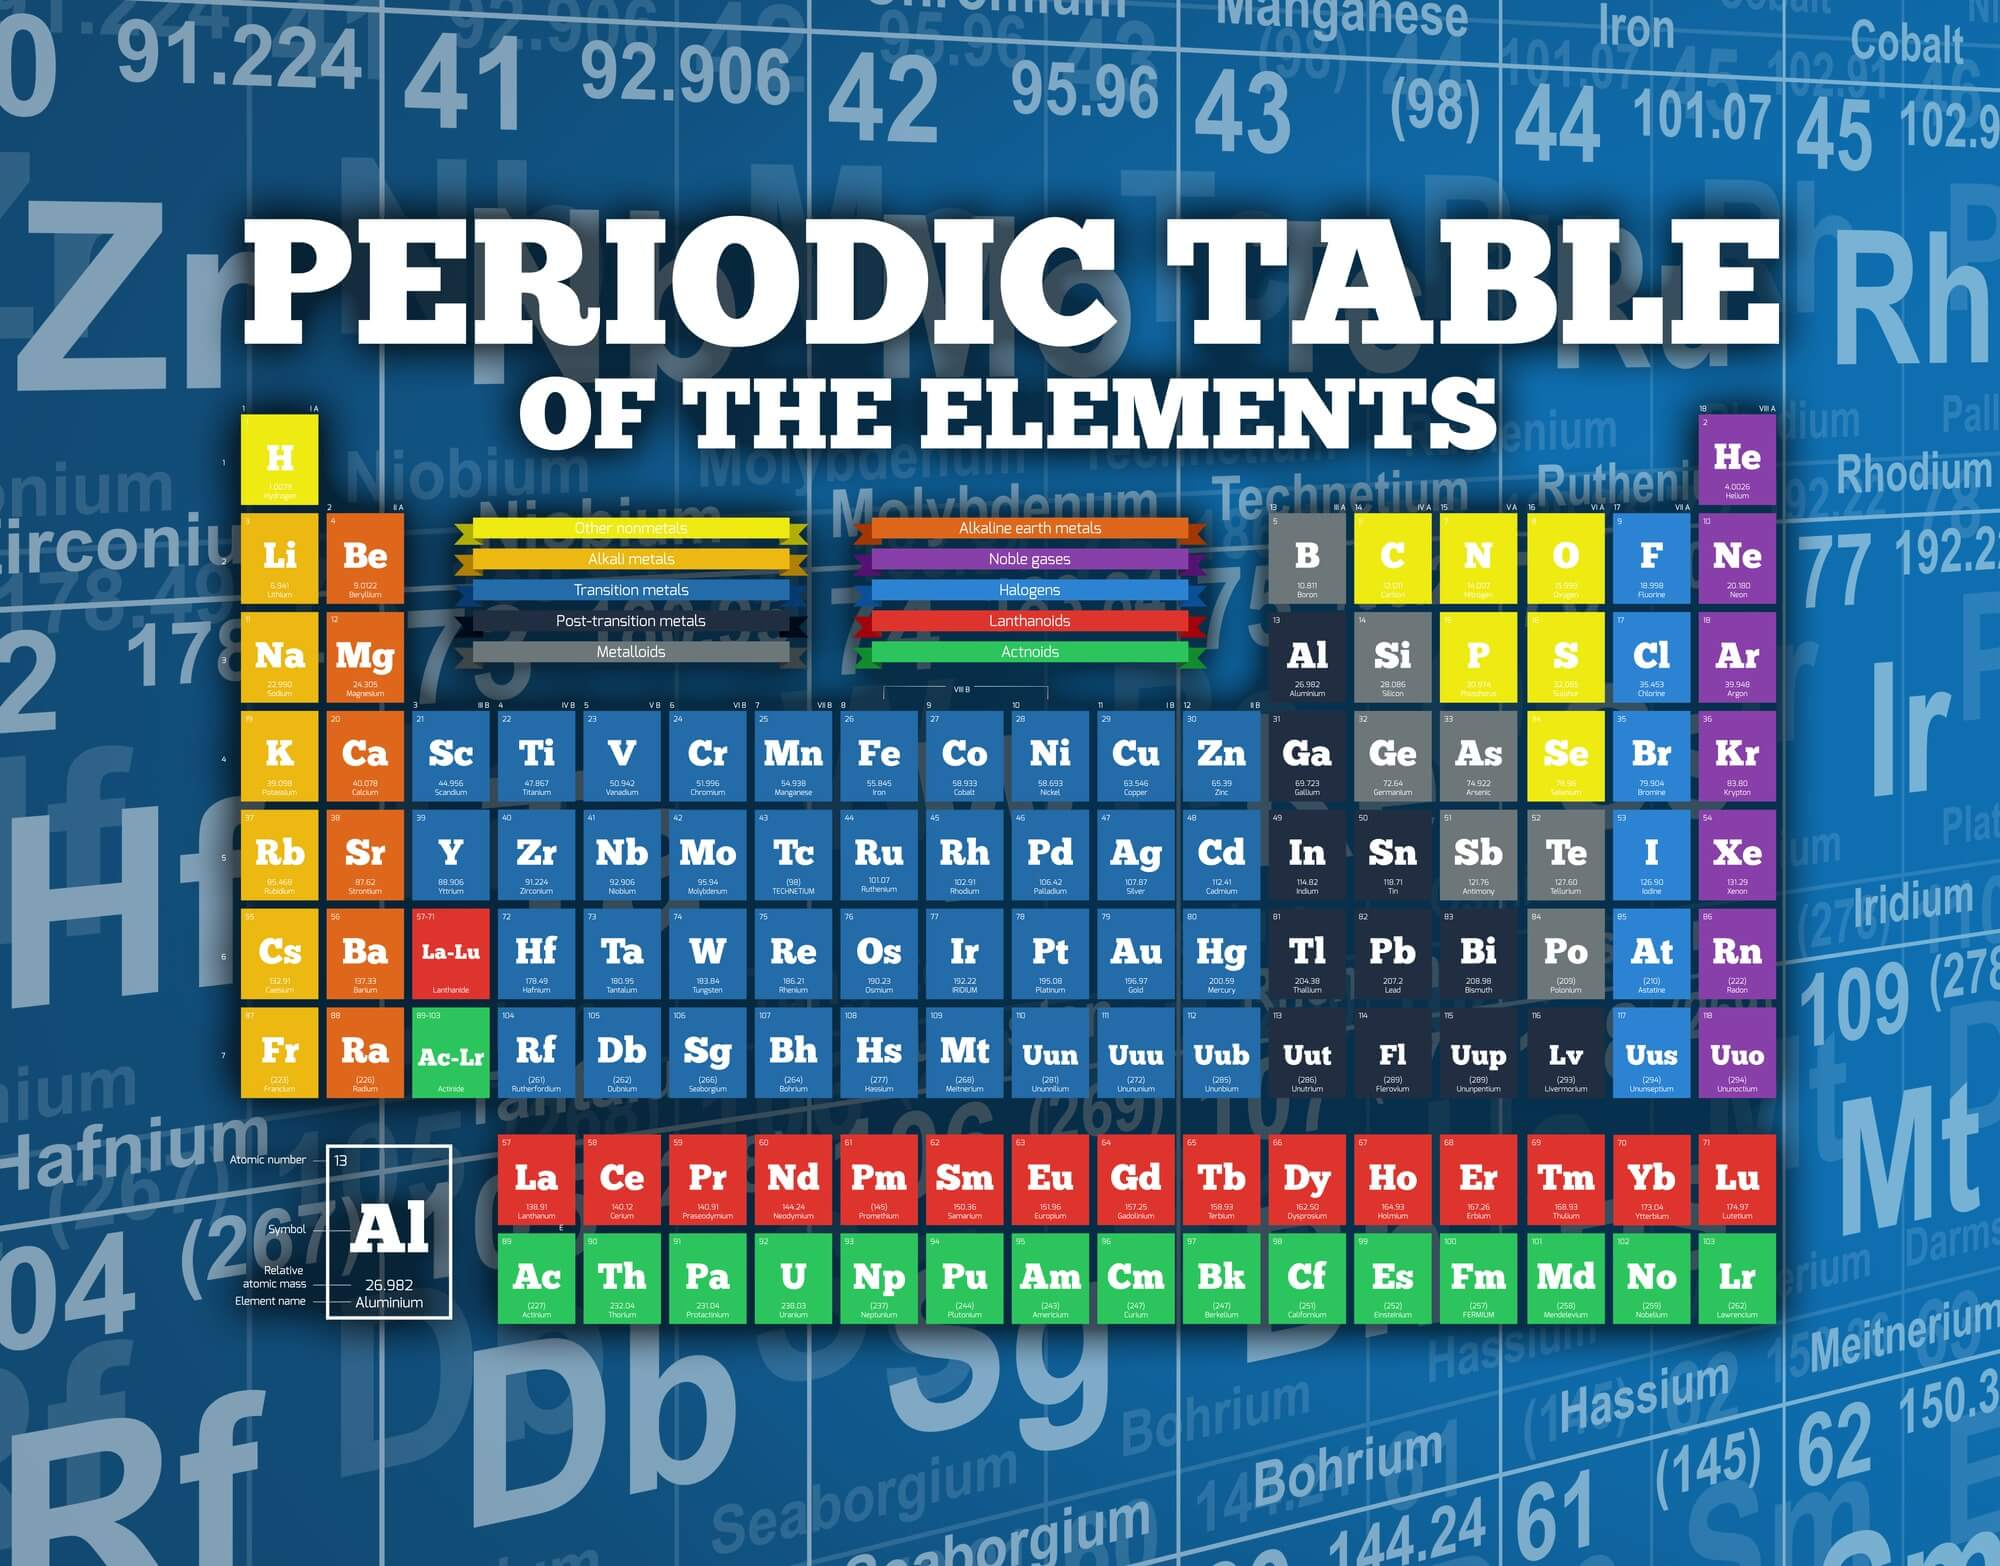 Periodic table of elements wallpaper wall mural wallsauce periodic table of elements mural wallpaper urtaz Gallery